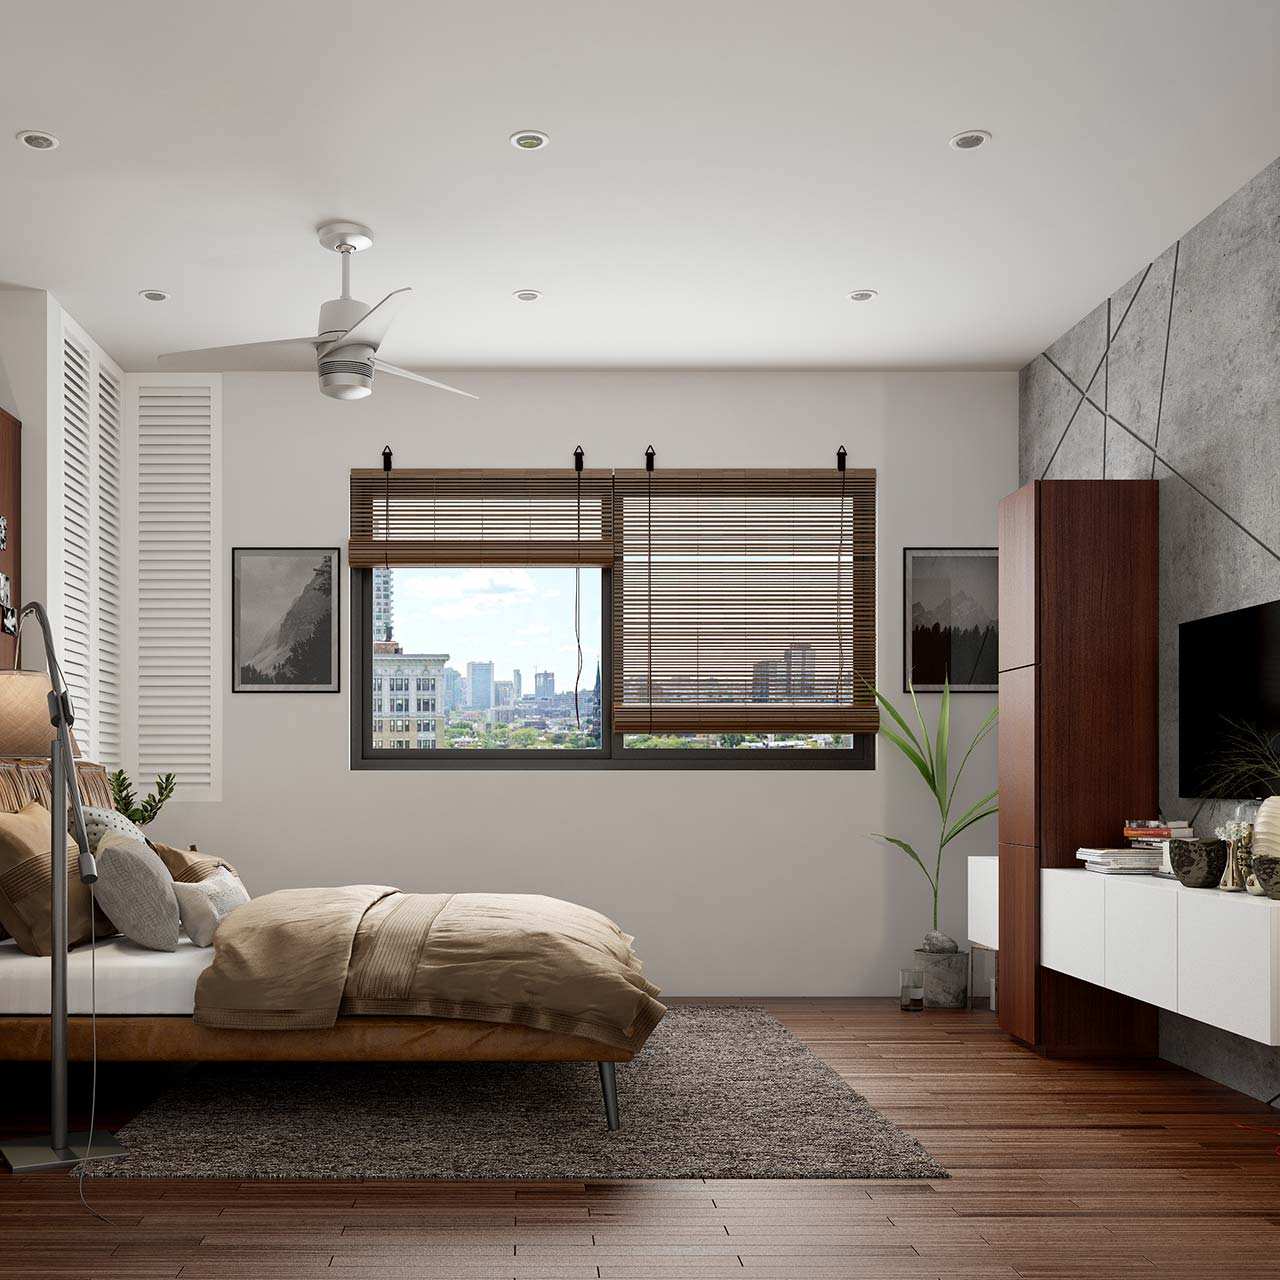 Modern bedroom with a shutters to control the brightness & inflow of natural light